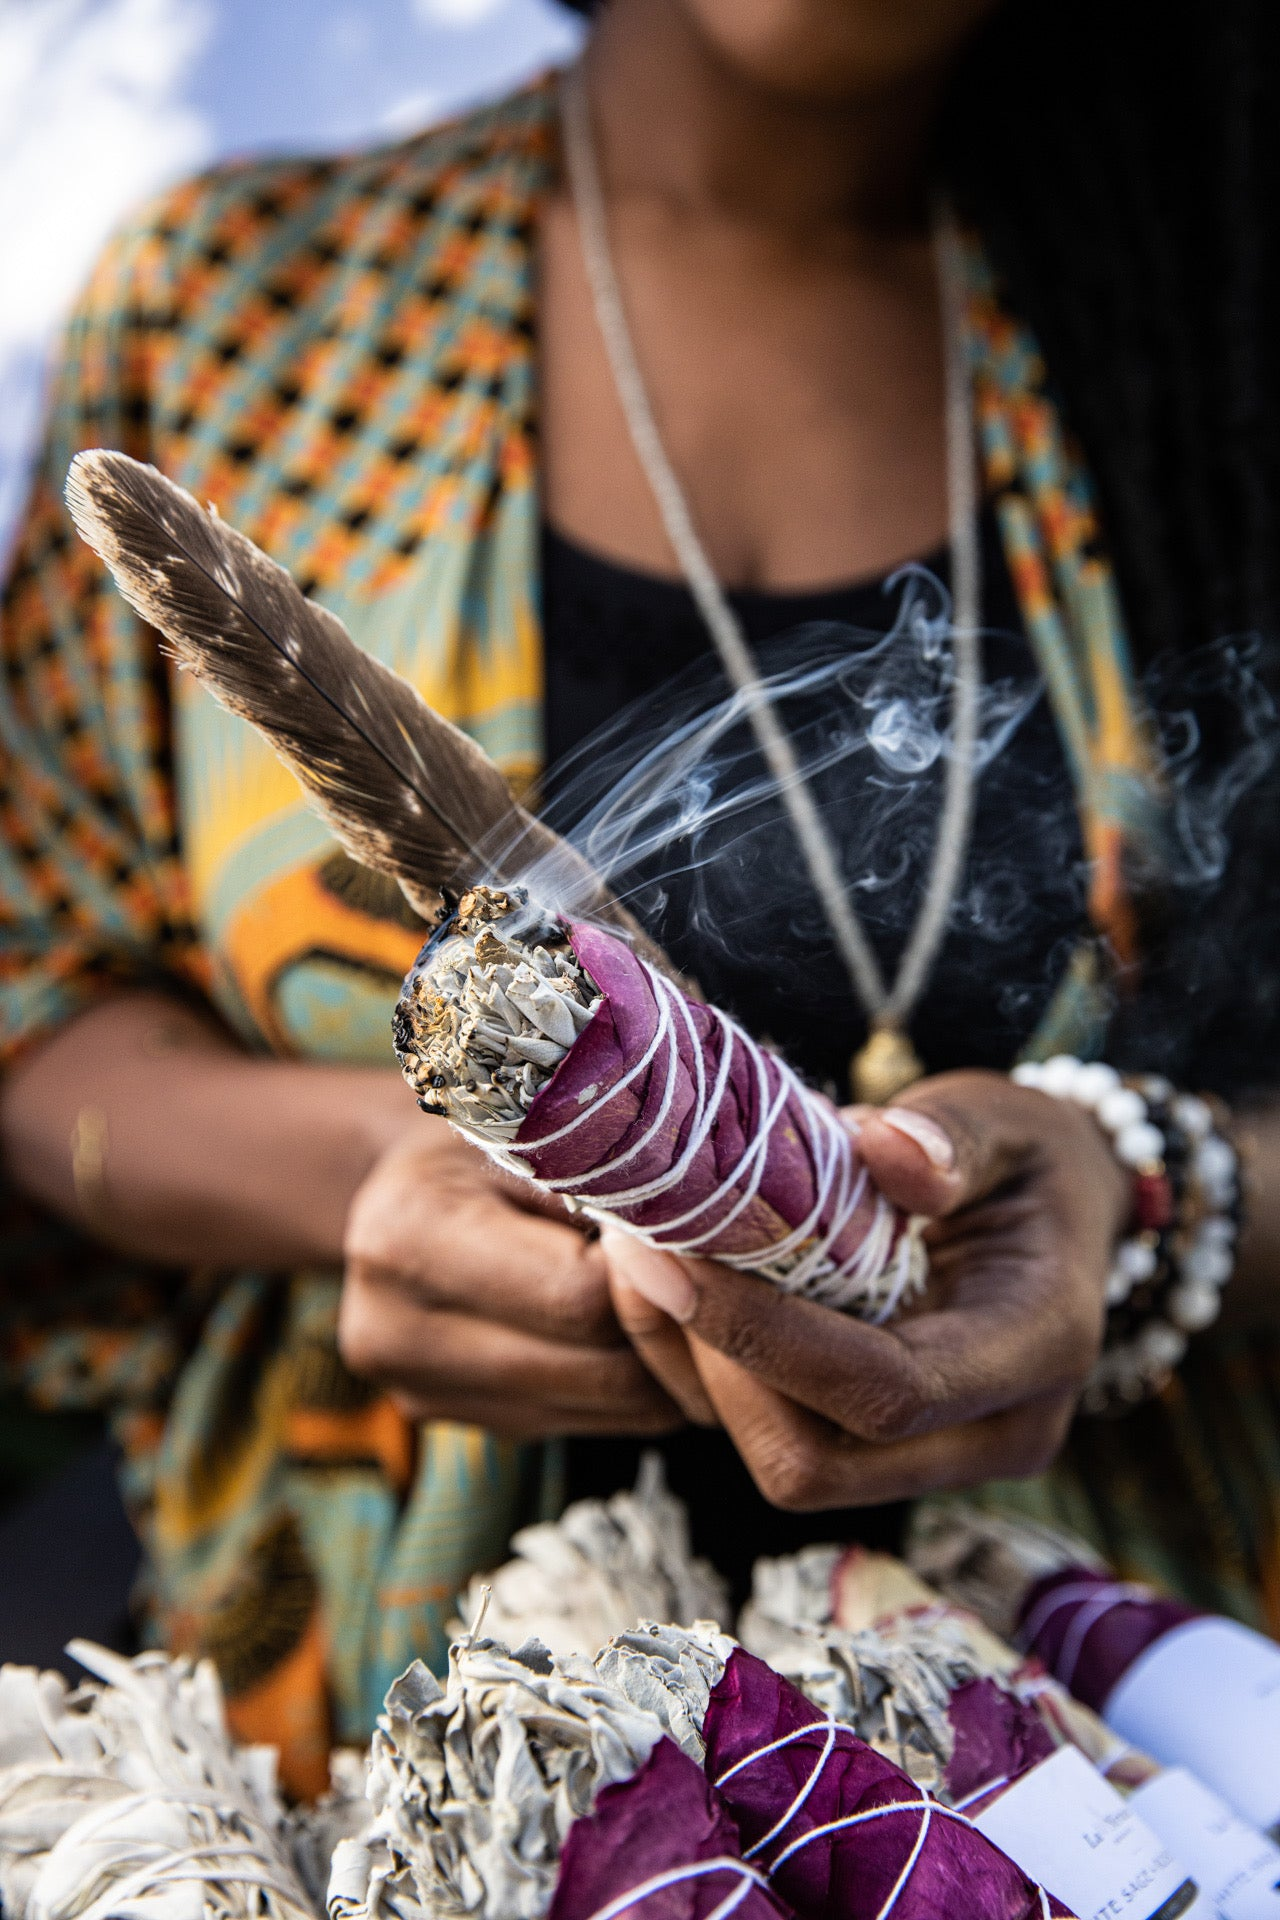 THE HISTORY AND SYMBOLISM OF SAGE AND SMUDGING